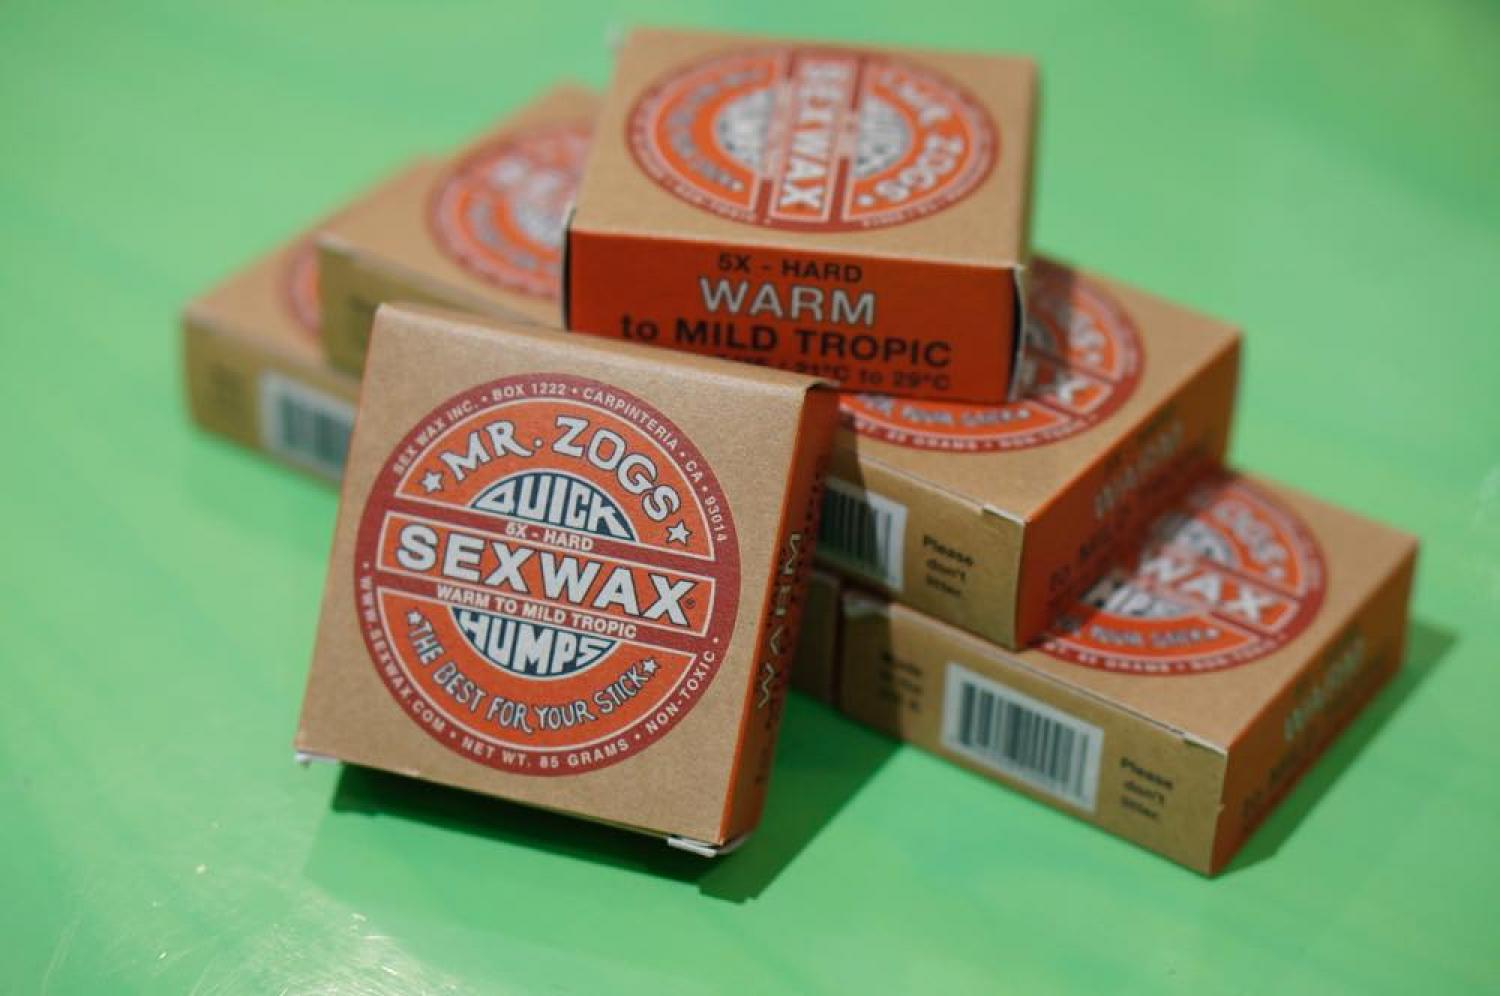 sex wax 5X RED LABEL WARM to WARM TROPIC